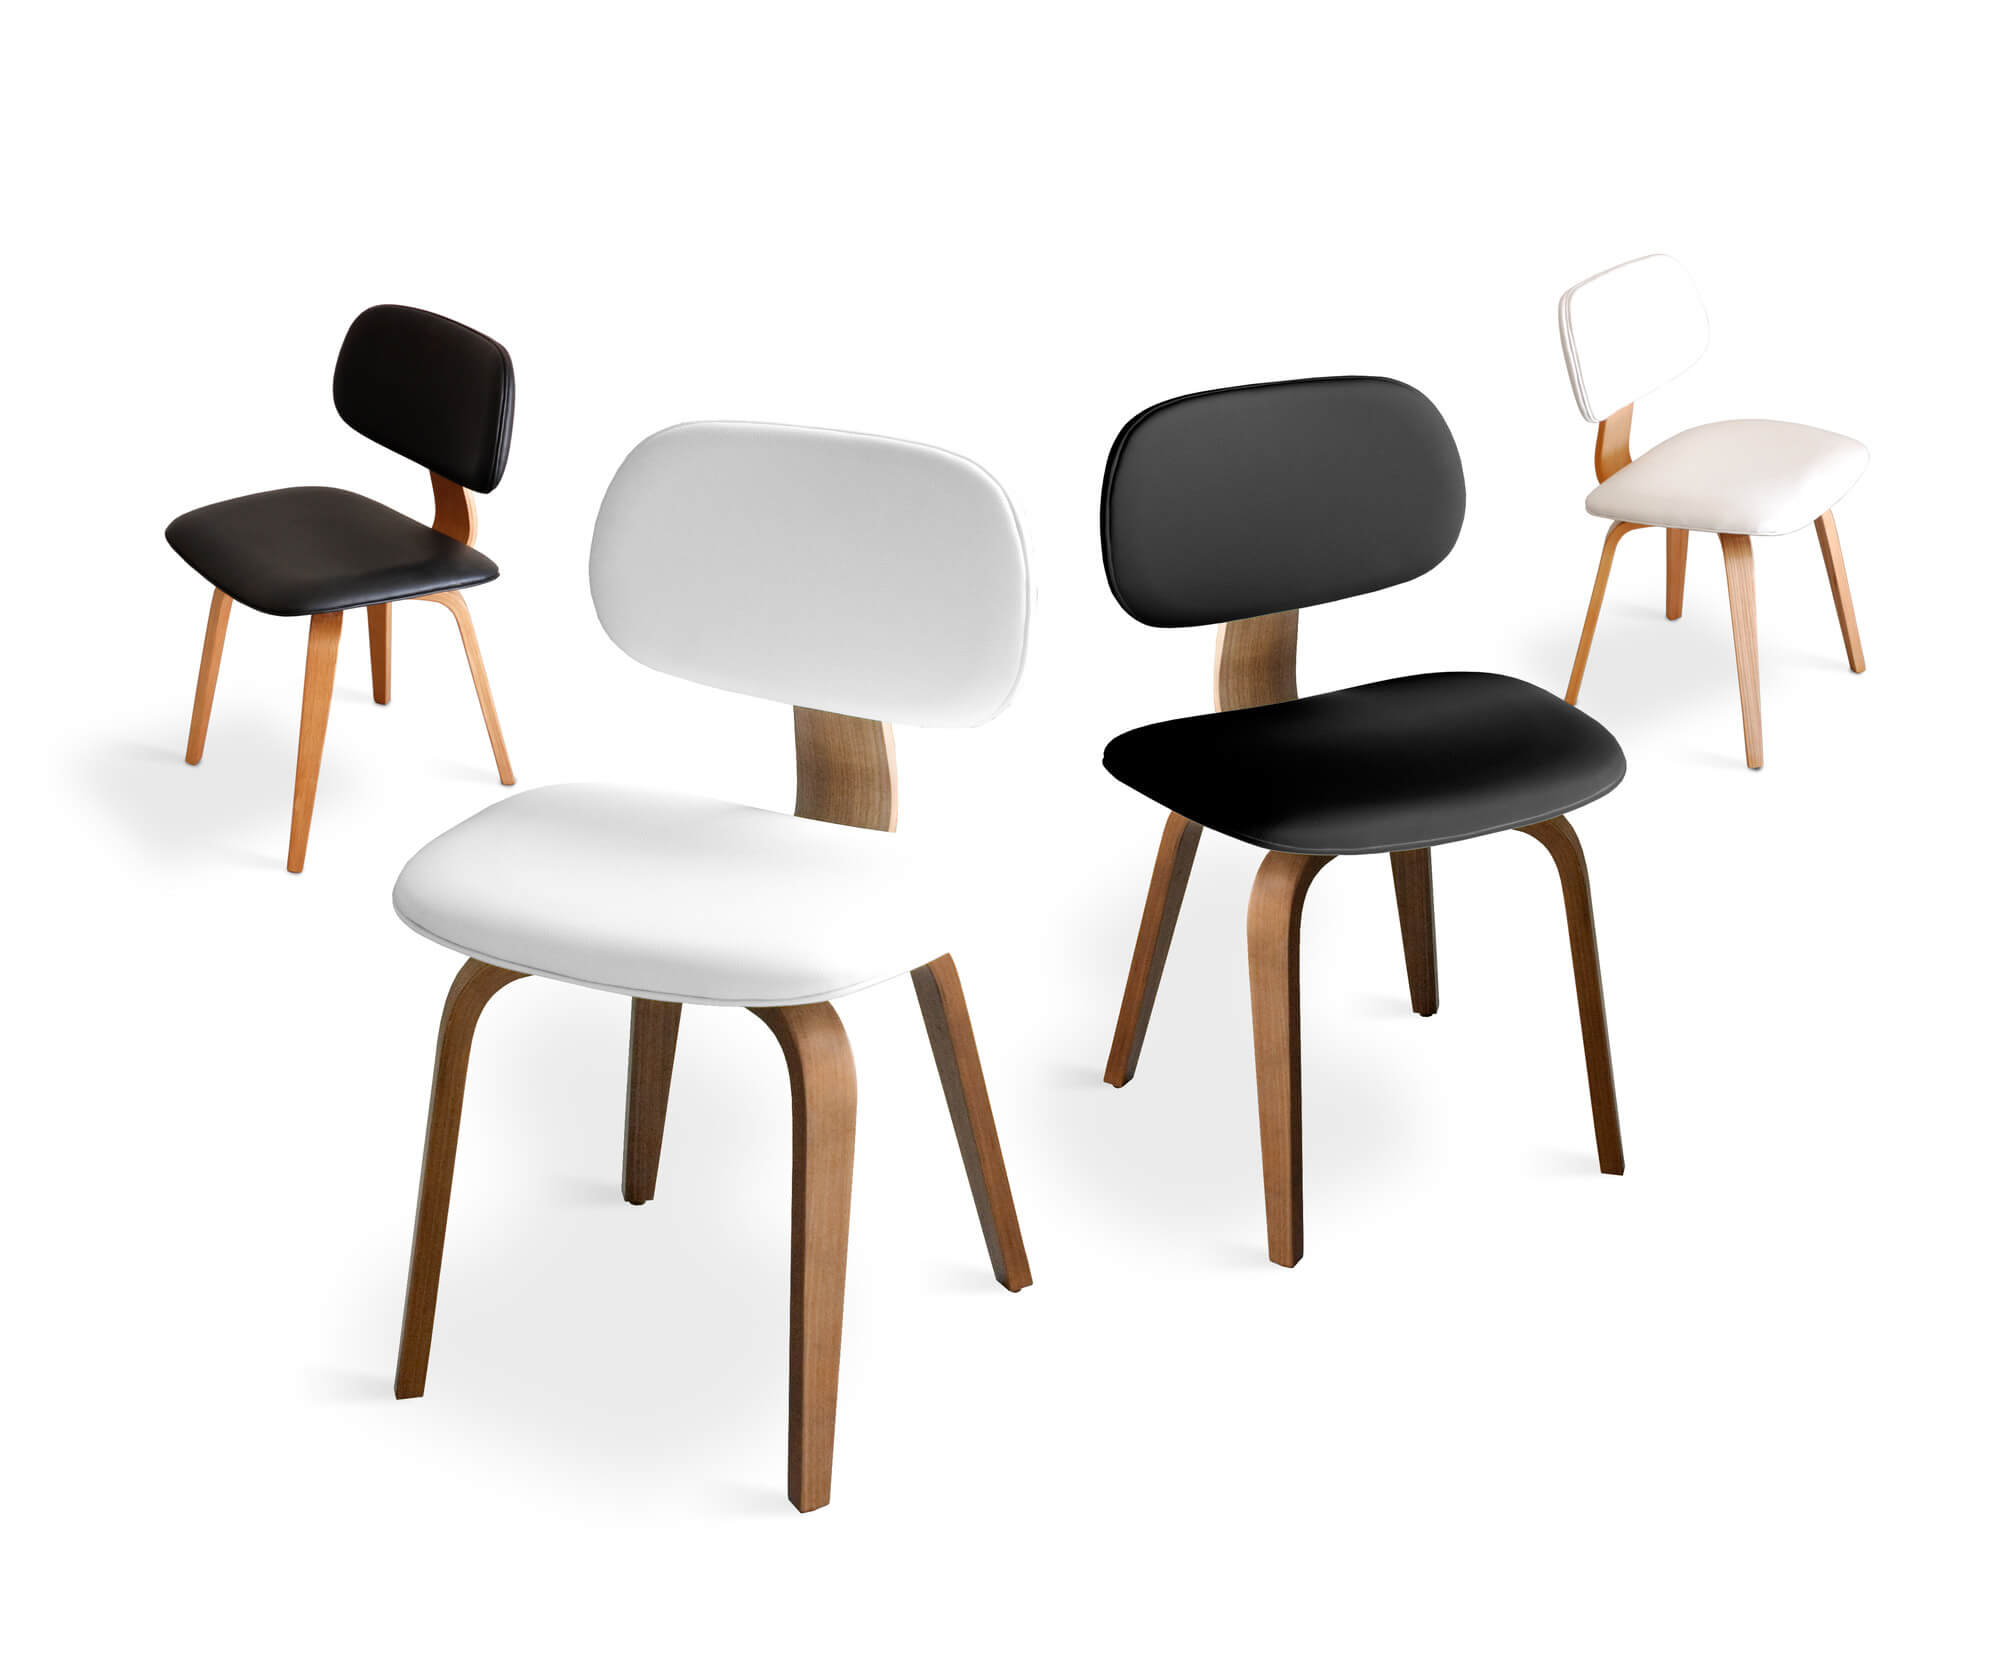 Dining chairs with wood frames are by far the most popular models you'll find when shopping. The most traditional build material is also the most varying, offering a wide range of styles and shapes.